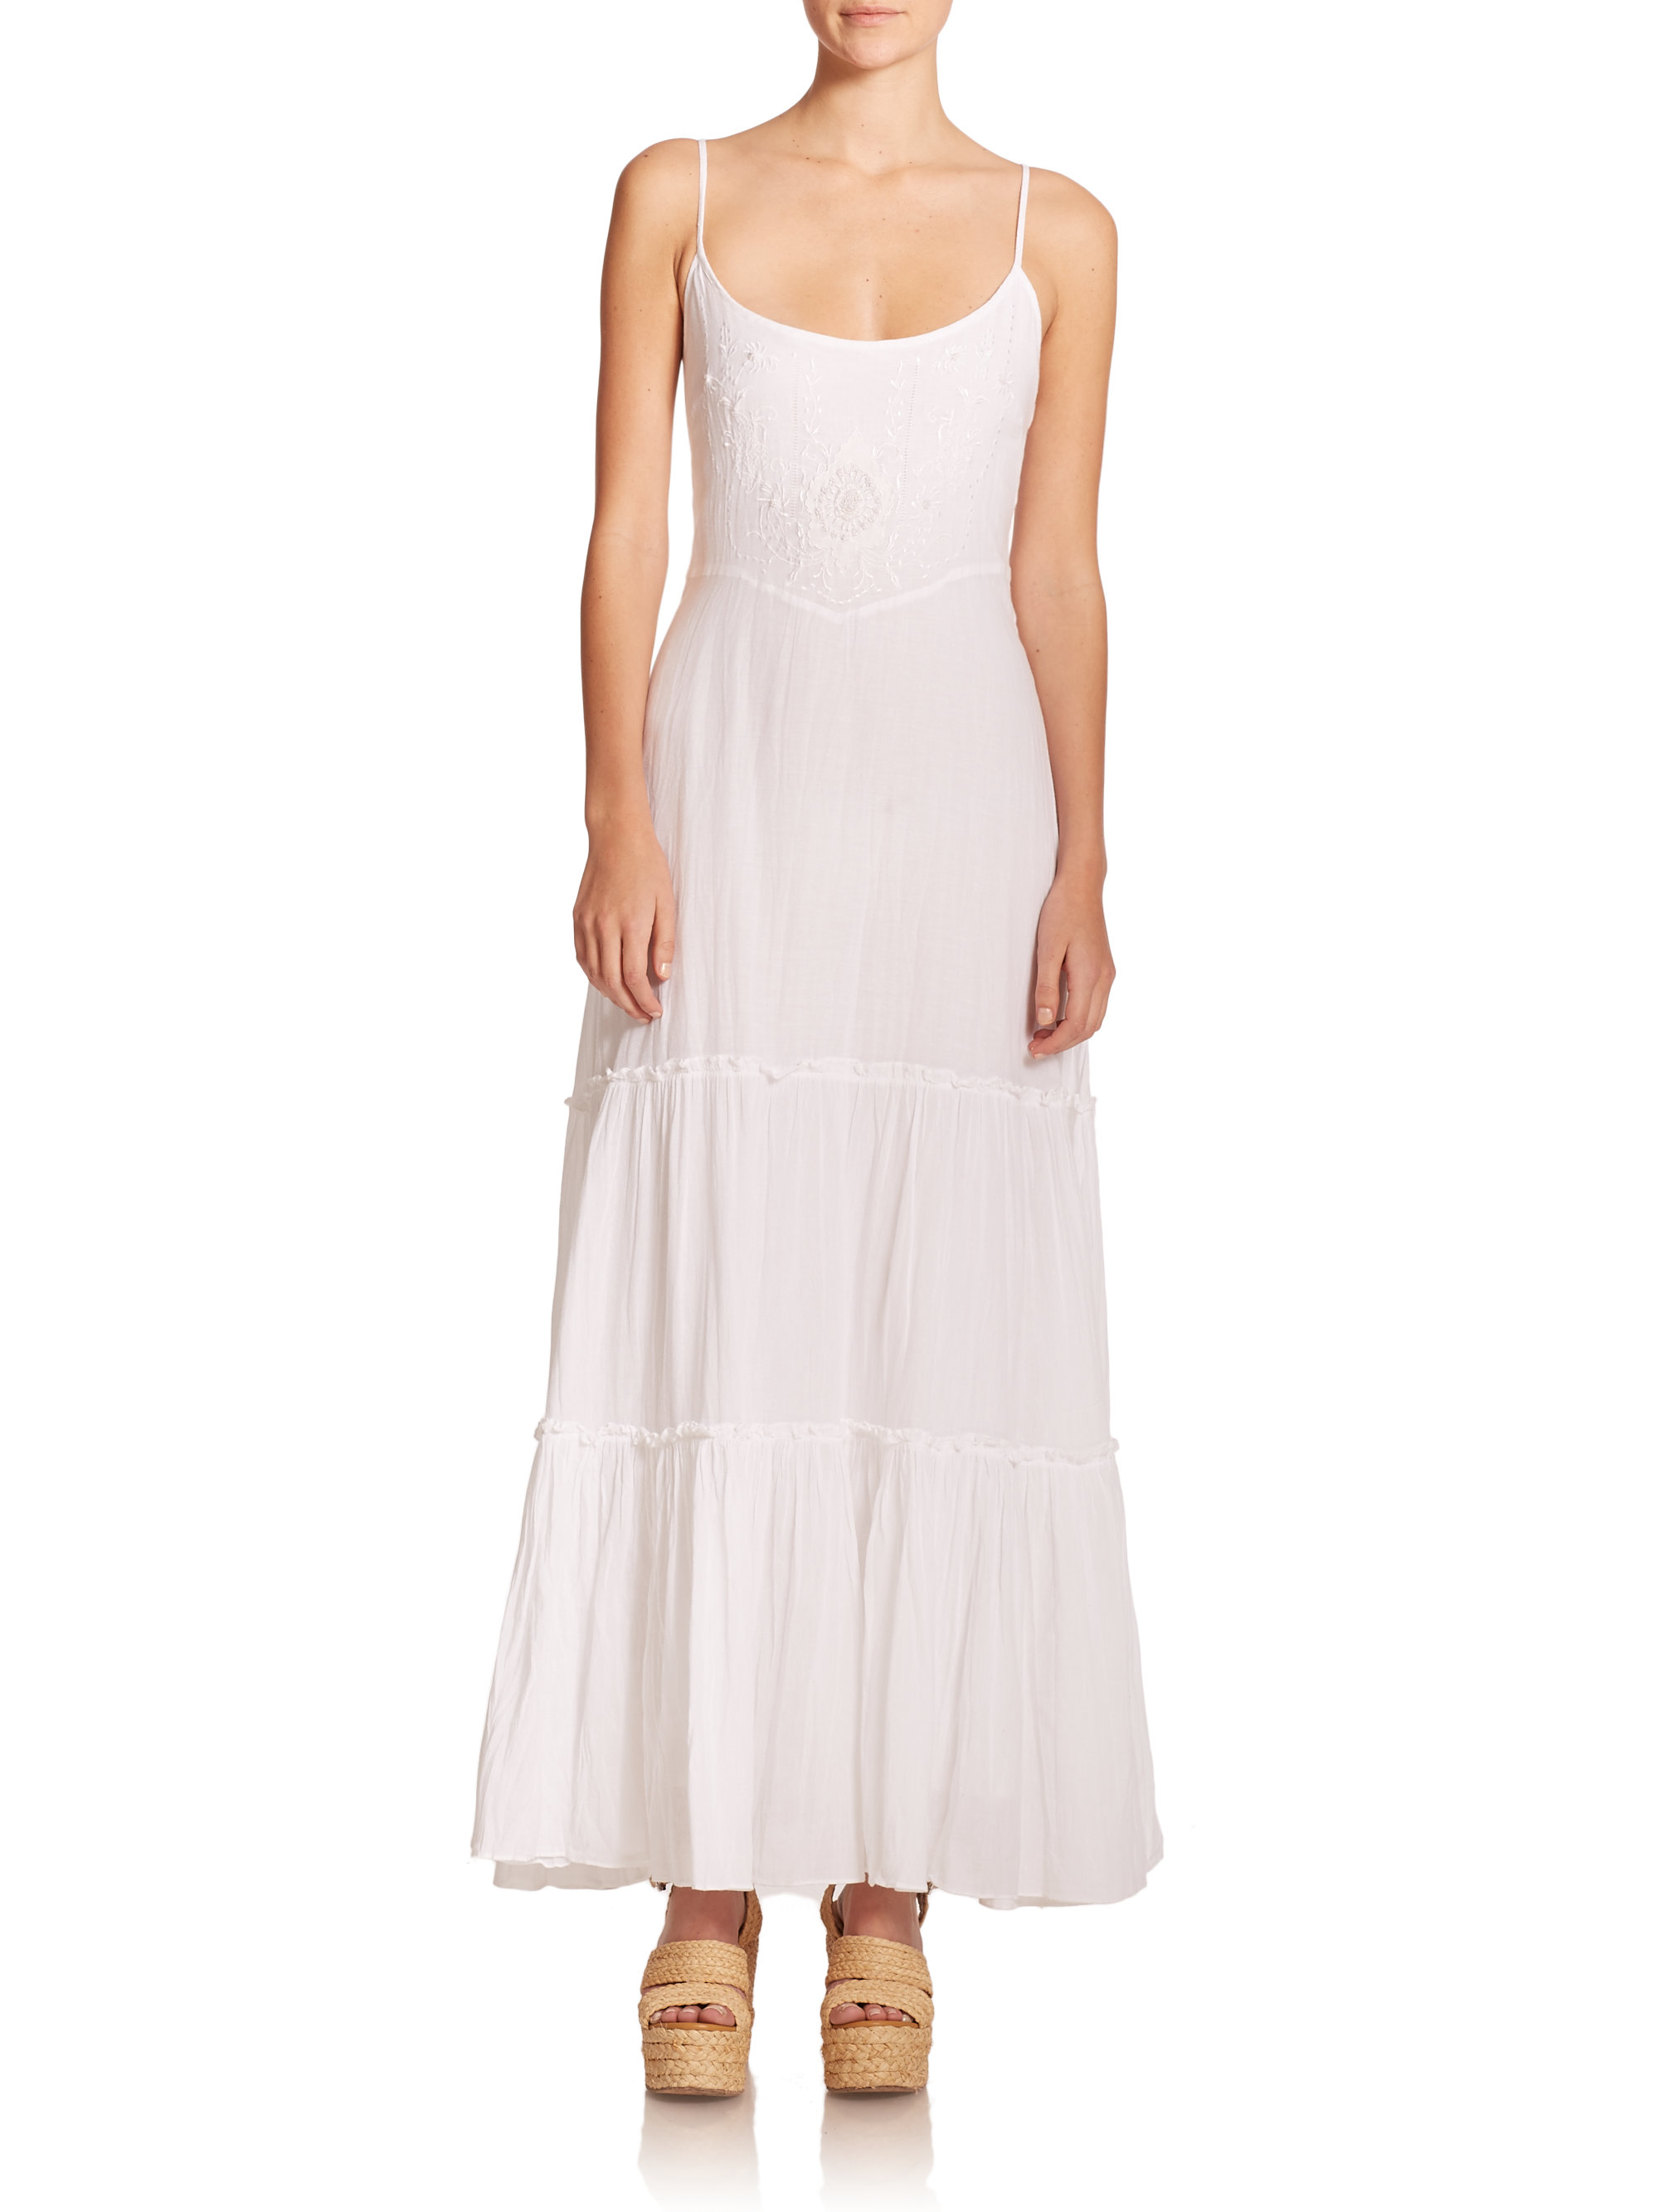 Polo Ralph Lauren Embroidered Amp Tiered Maxi Dress In White